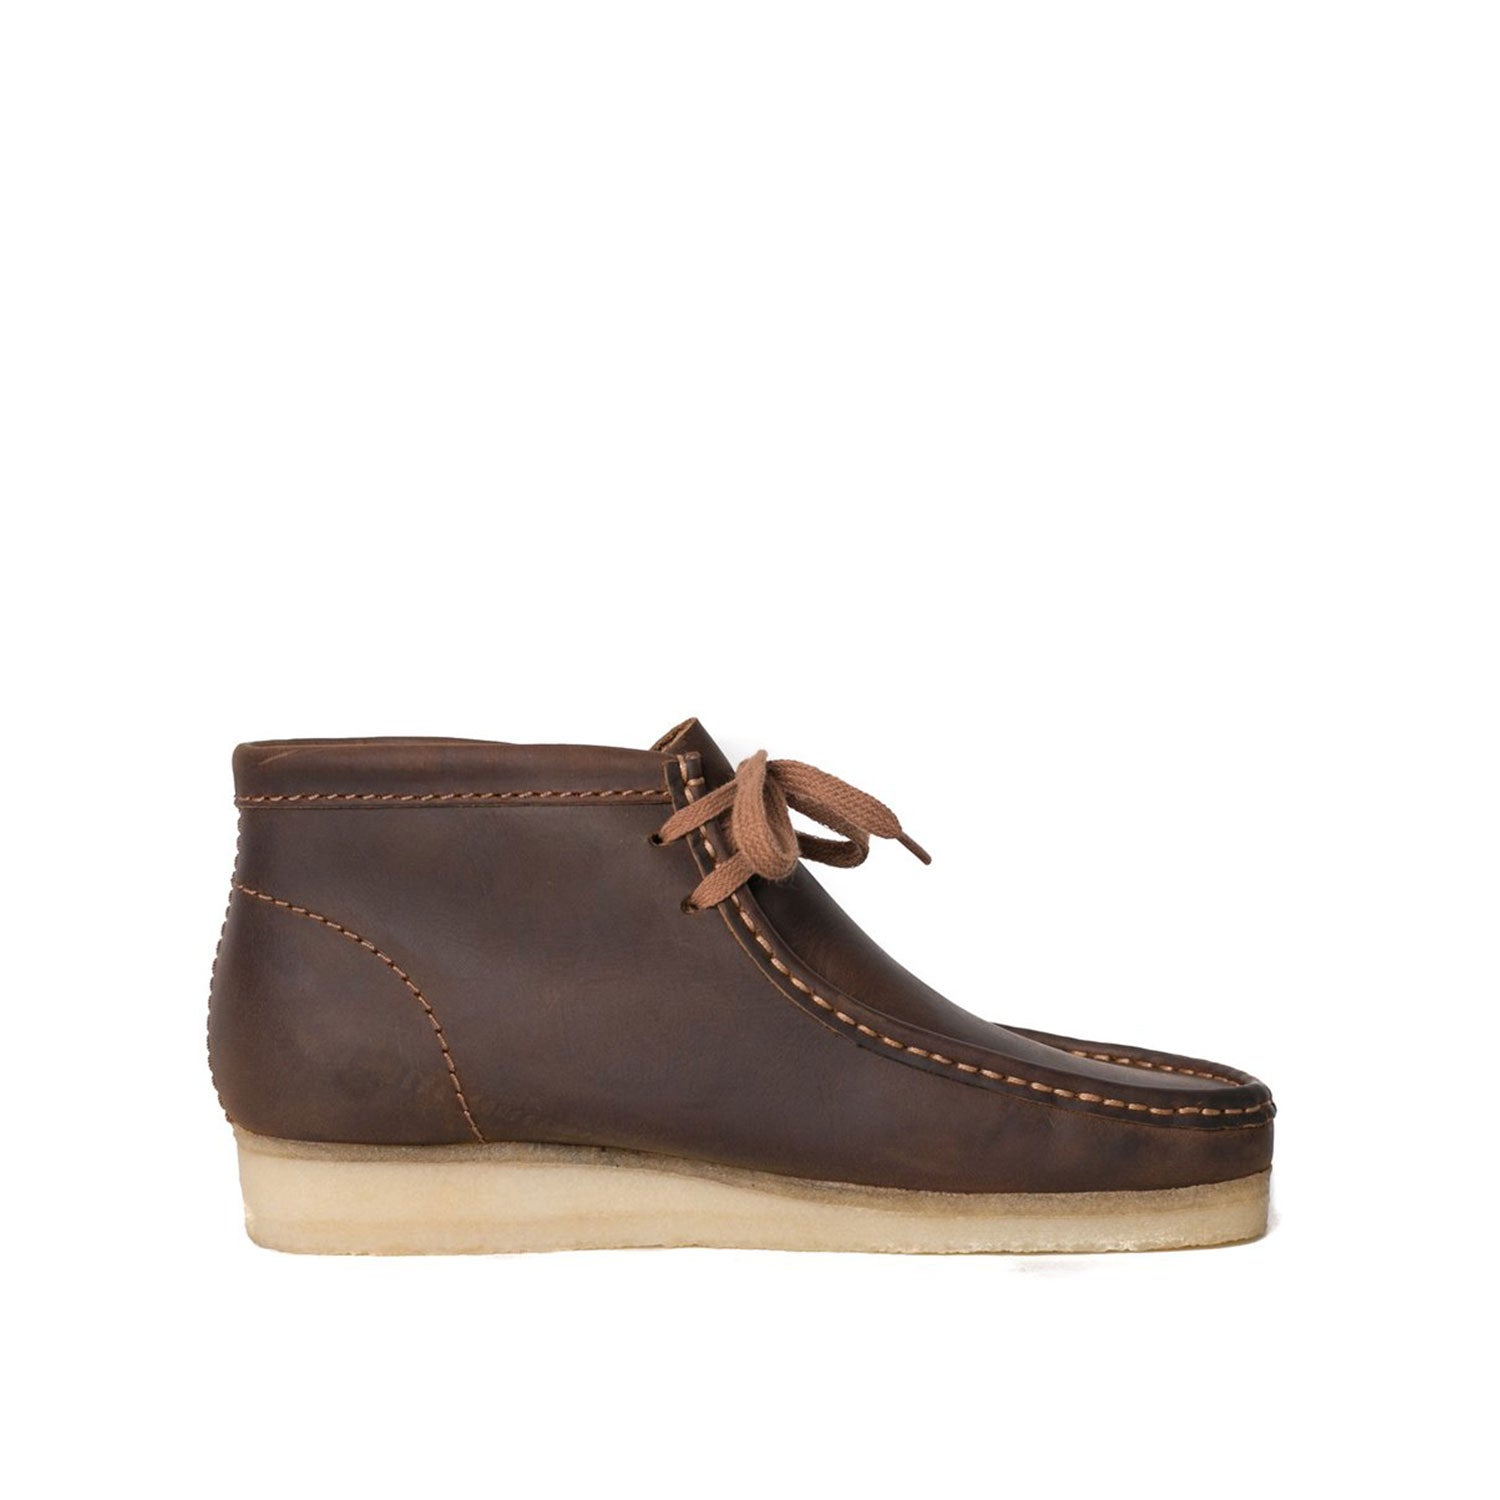 Wallabee Boot Beeswax Snake Oil Provisions